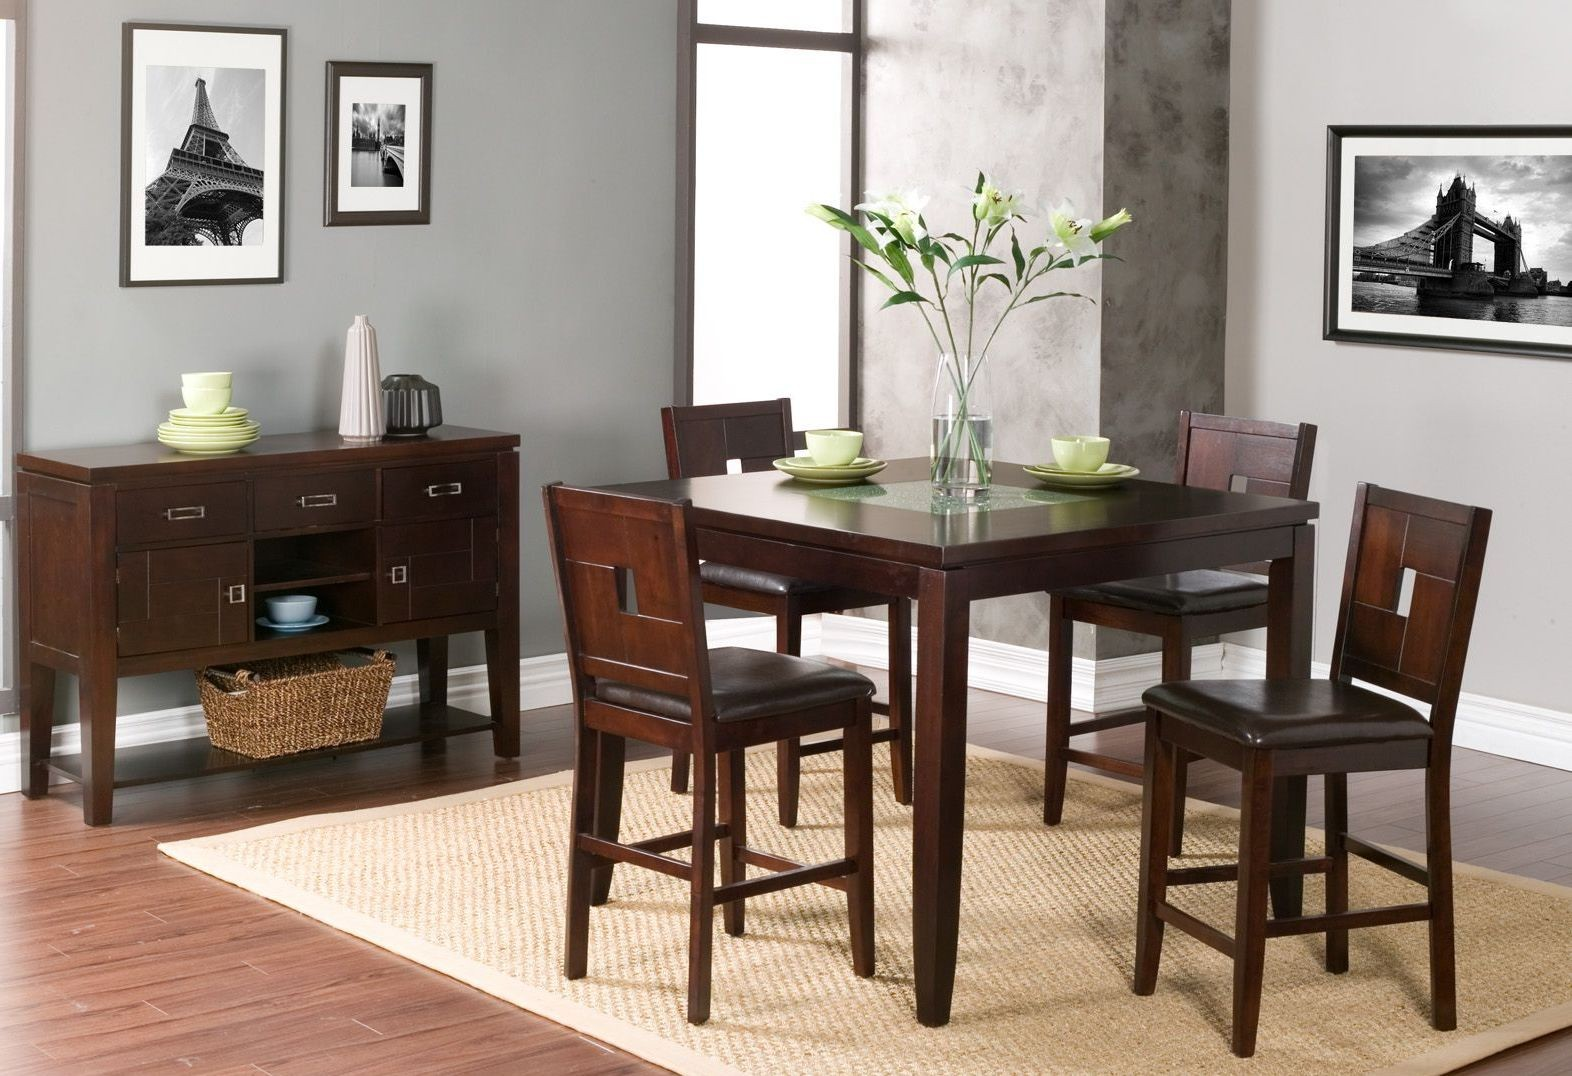 lakeport espresso counter height dining room set 552 01